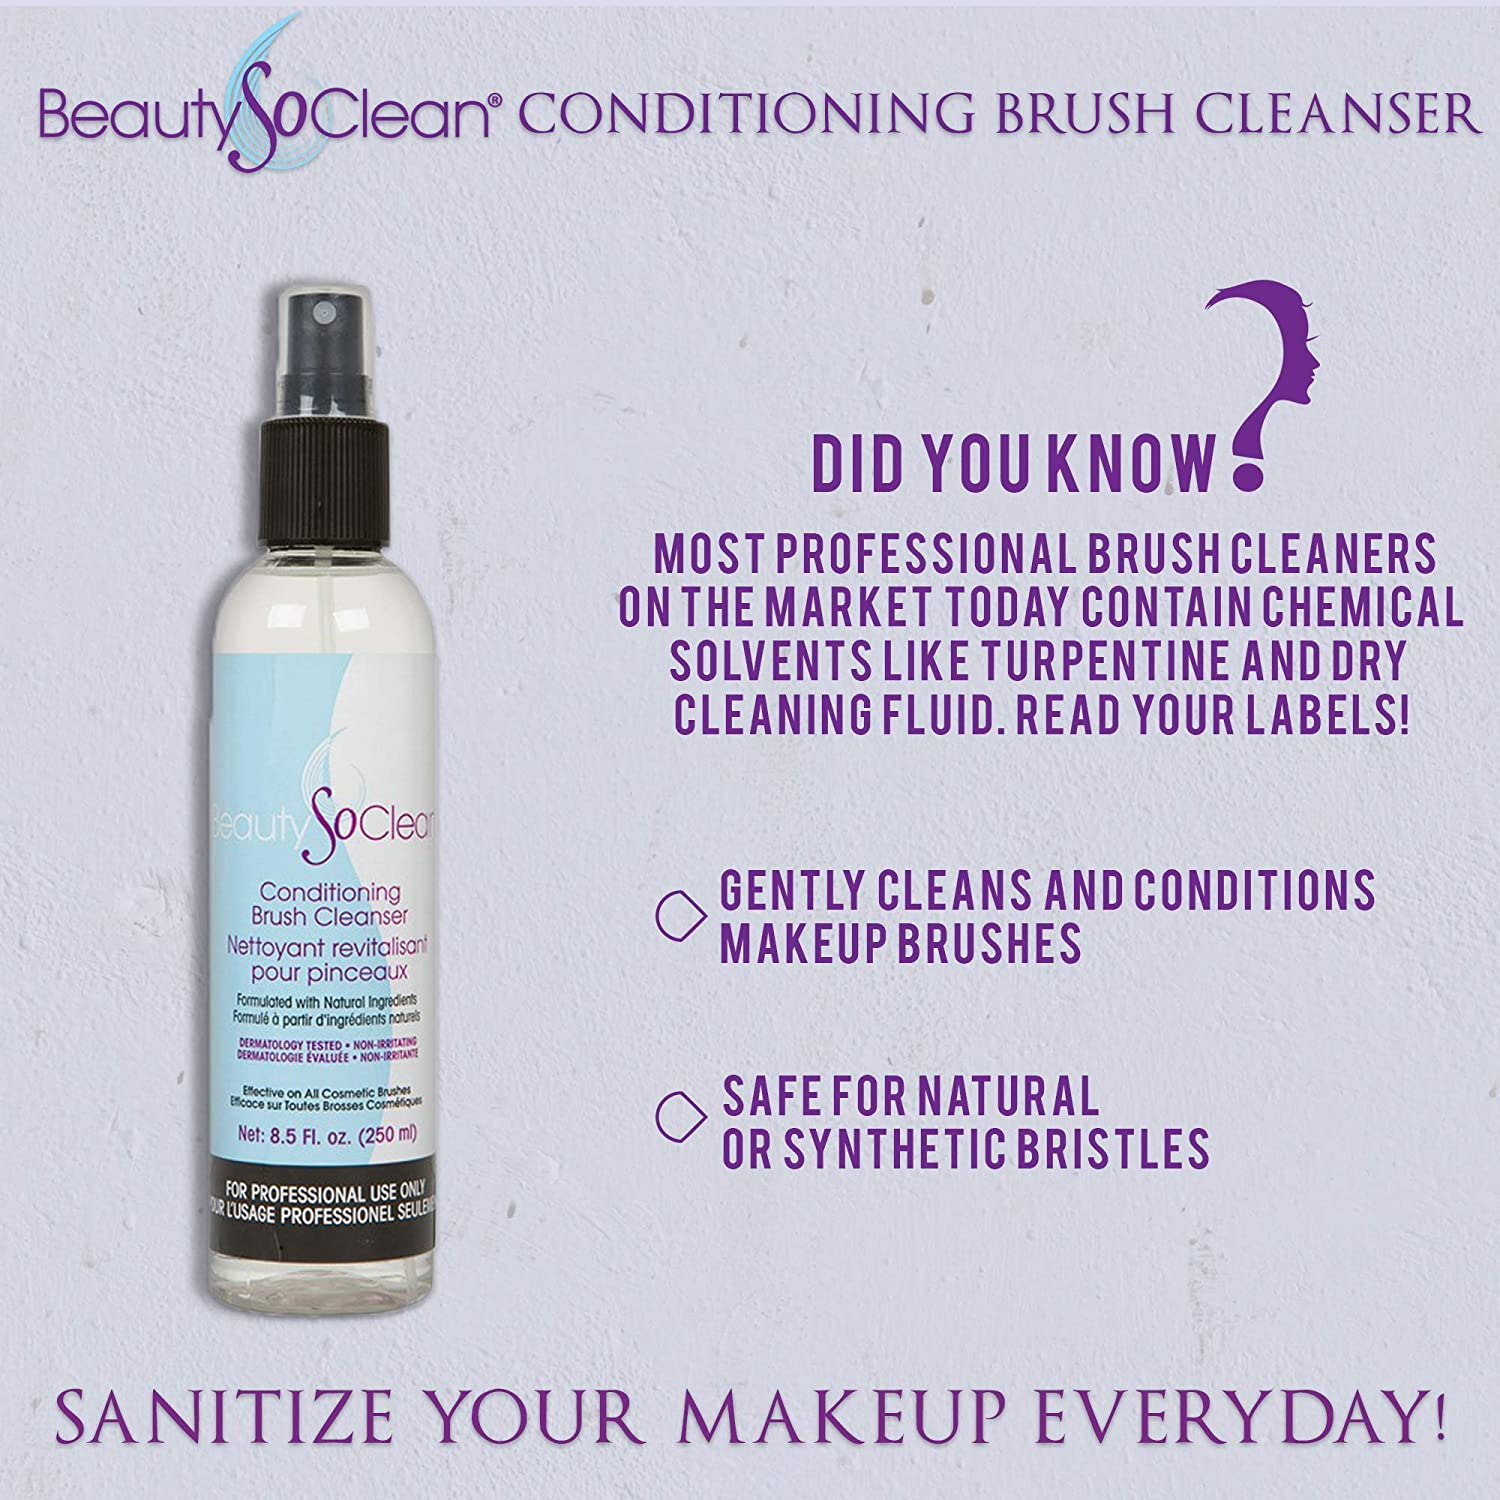 BeautySoClean Conditioning Brush Cleanser